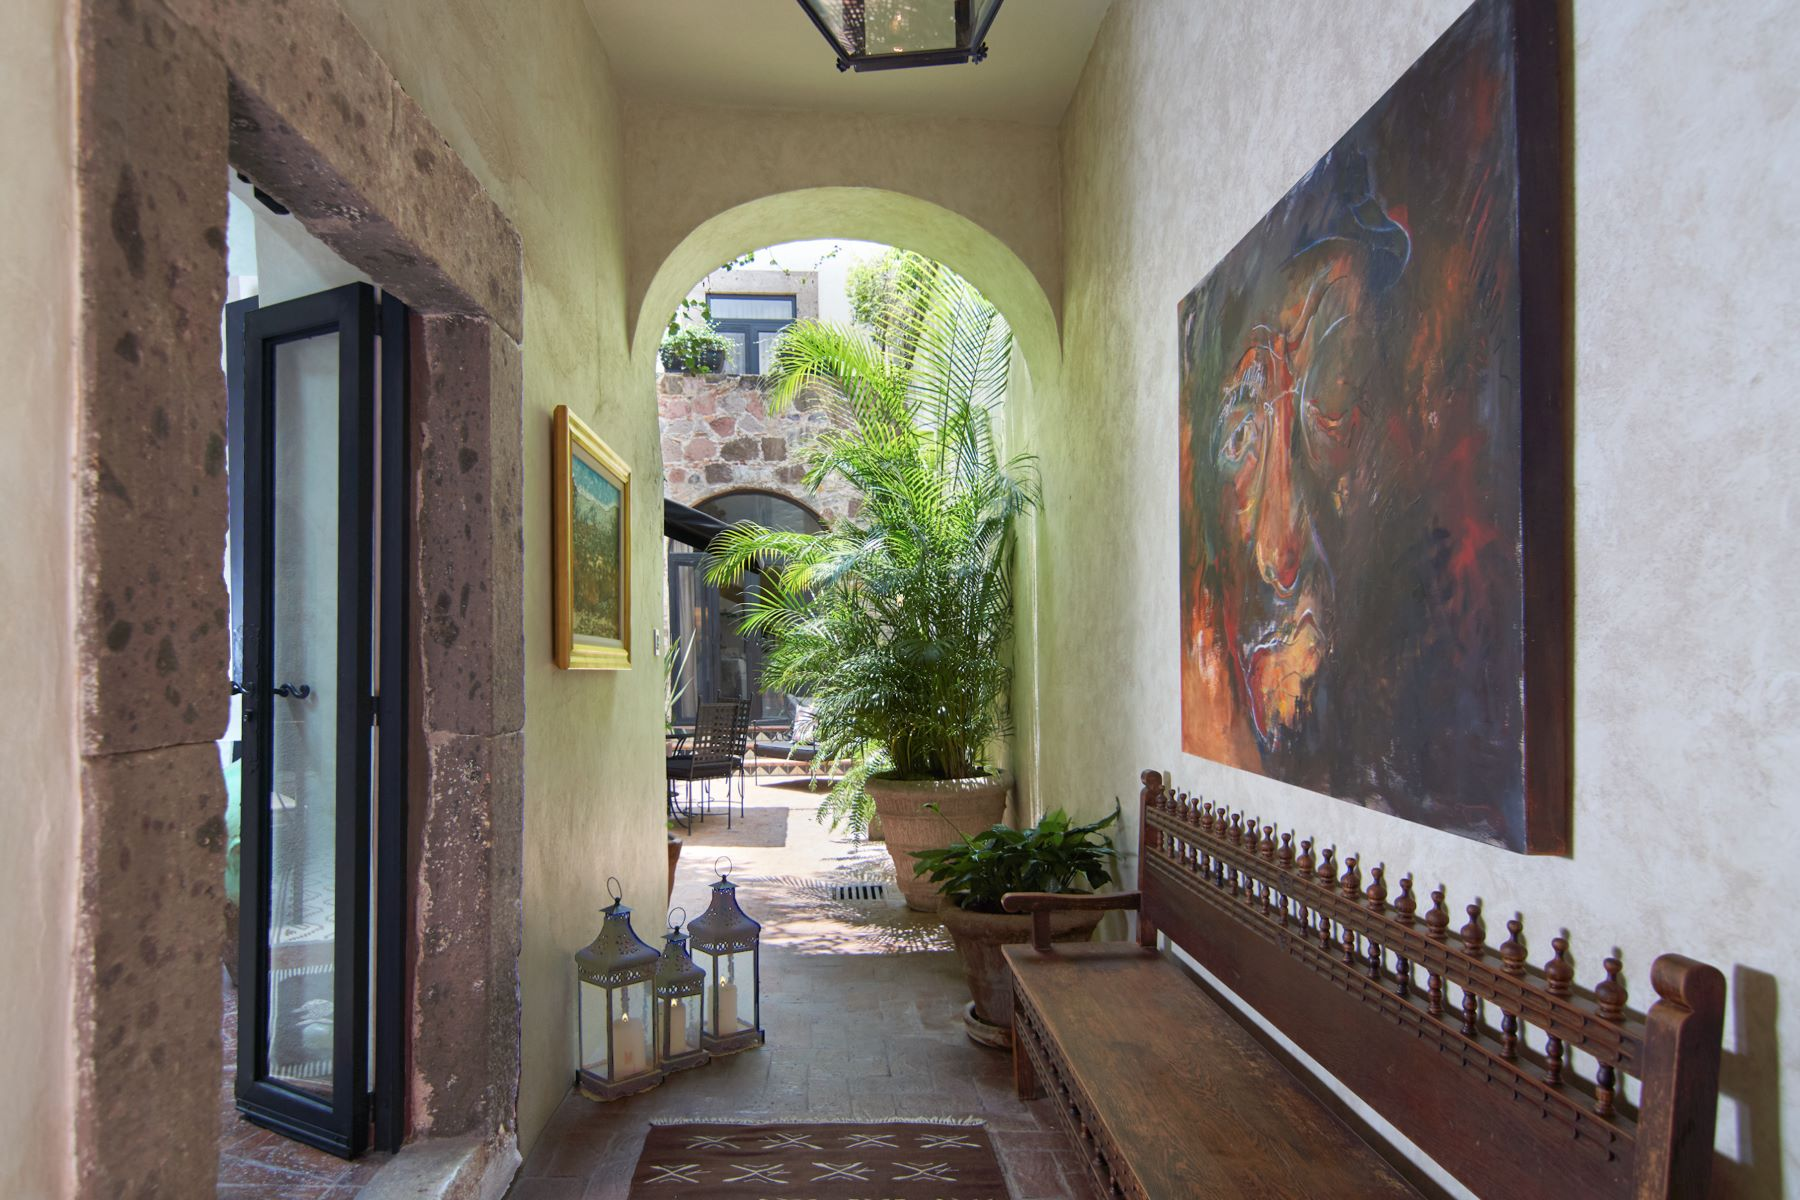 Single Family Home for Sale at Casa Corazon Terraplen 36 San Miguel De Allende, Guanajuato 37700 Mexico